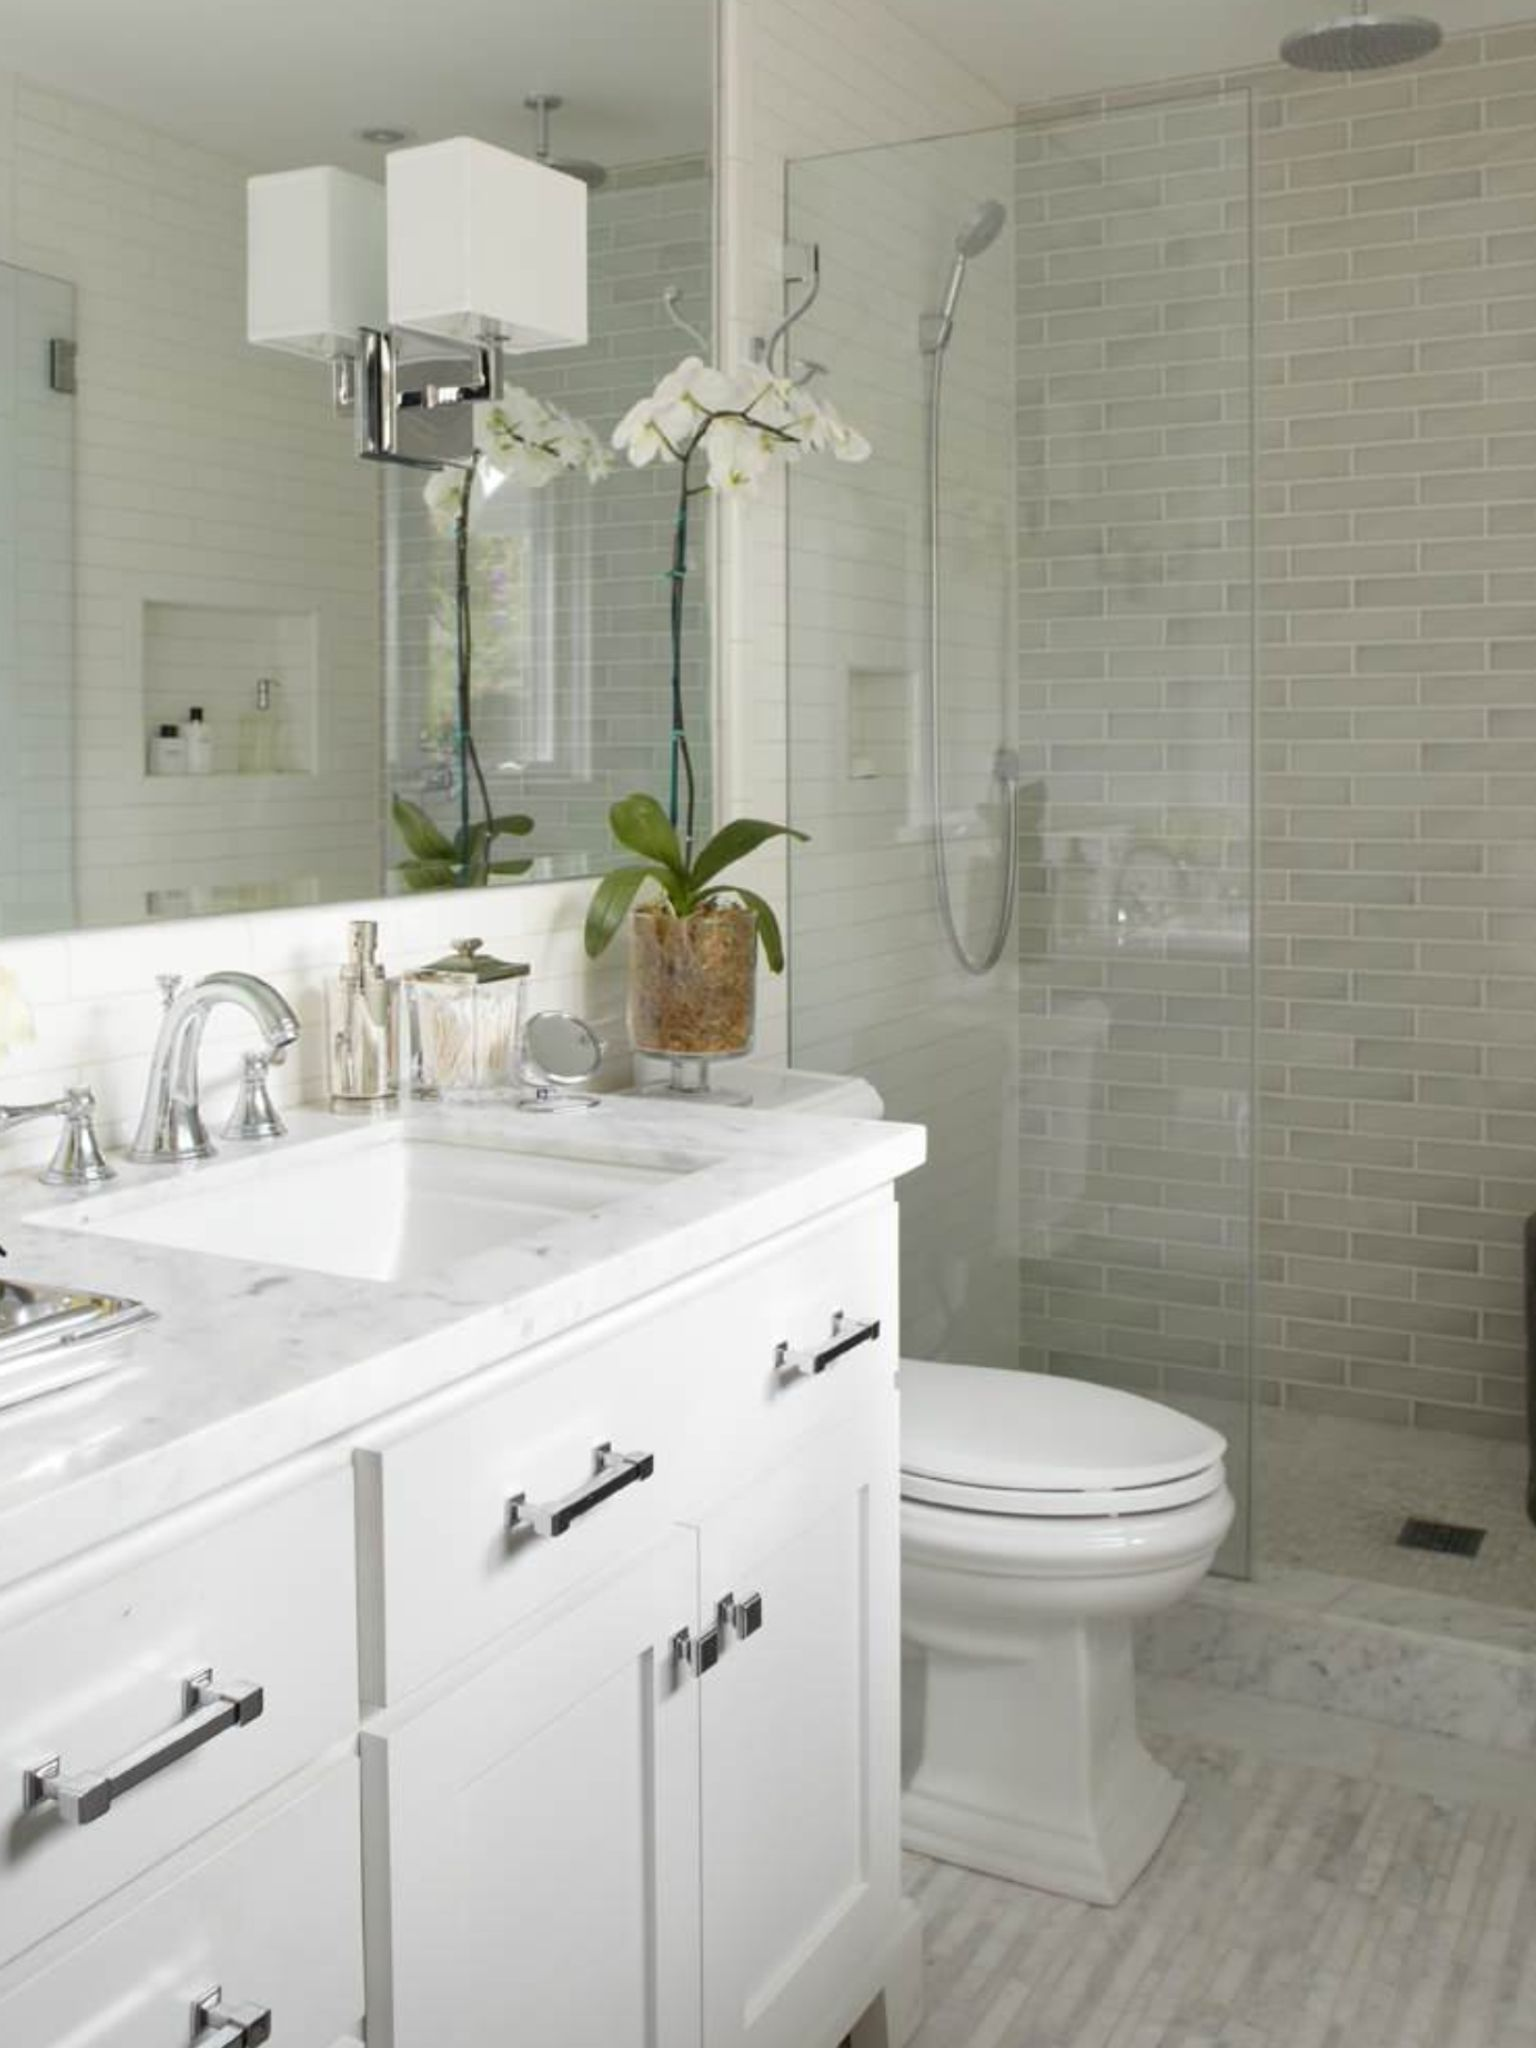 Houzz Rectangle Tiles Bathroom Ideas Pinterest Houzz Bath And Intended For 10 Elegant Master Ba Bathroom Design Small Small Bathroom With Shower Small Bathroom